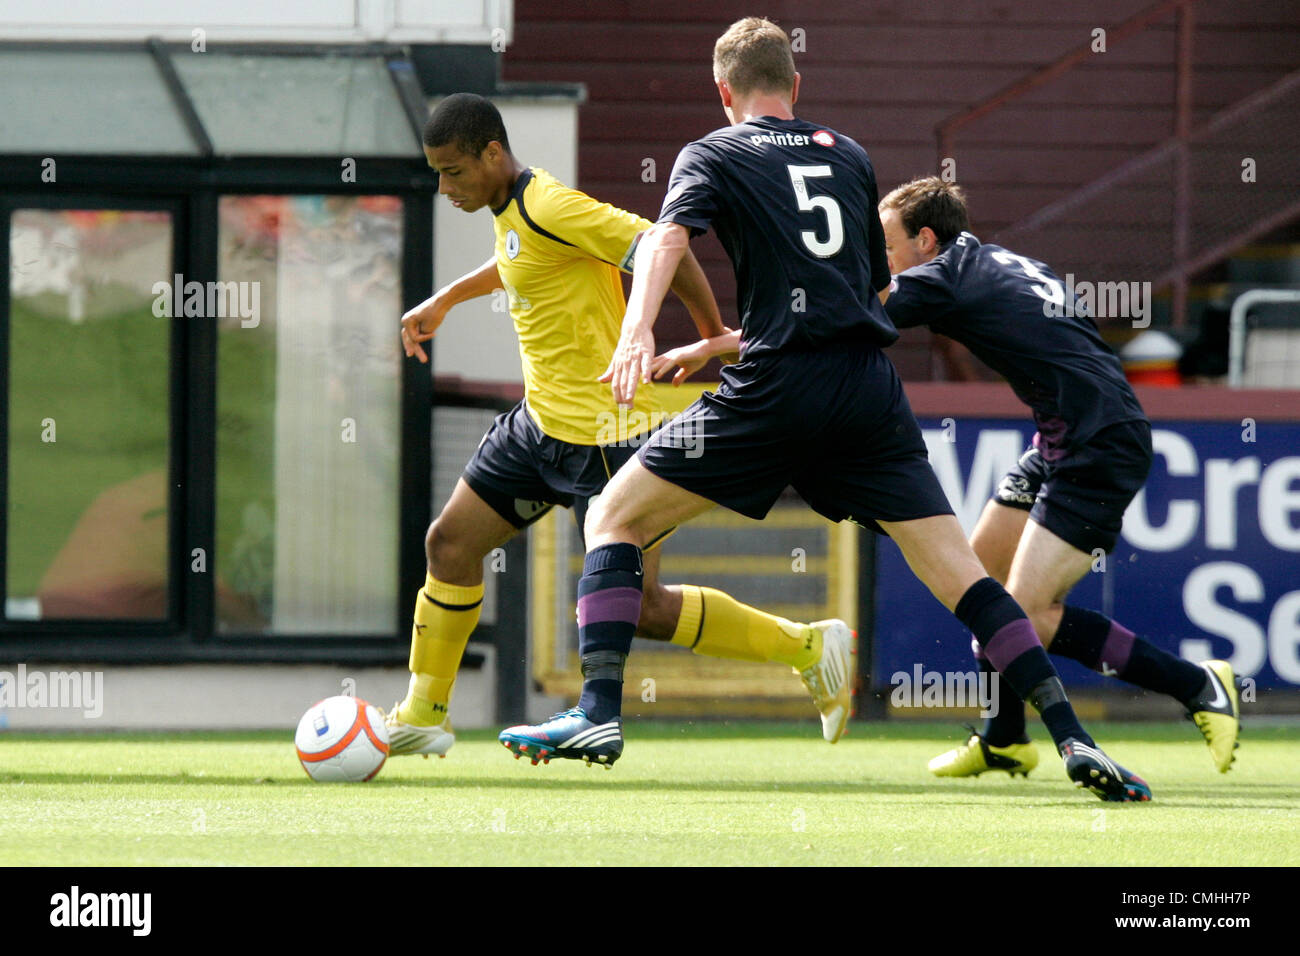 11th Aug 2012. 11.08.2012 Glasgow, Scotland. Falkirk's 9 Lyle Taylor in action during the Scottish Football - Stock Image